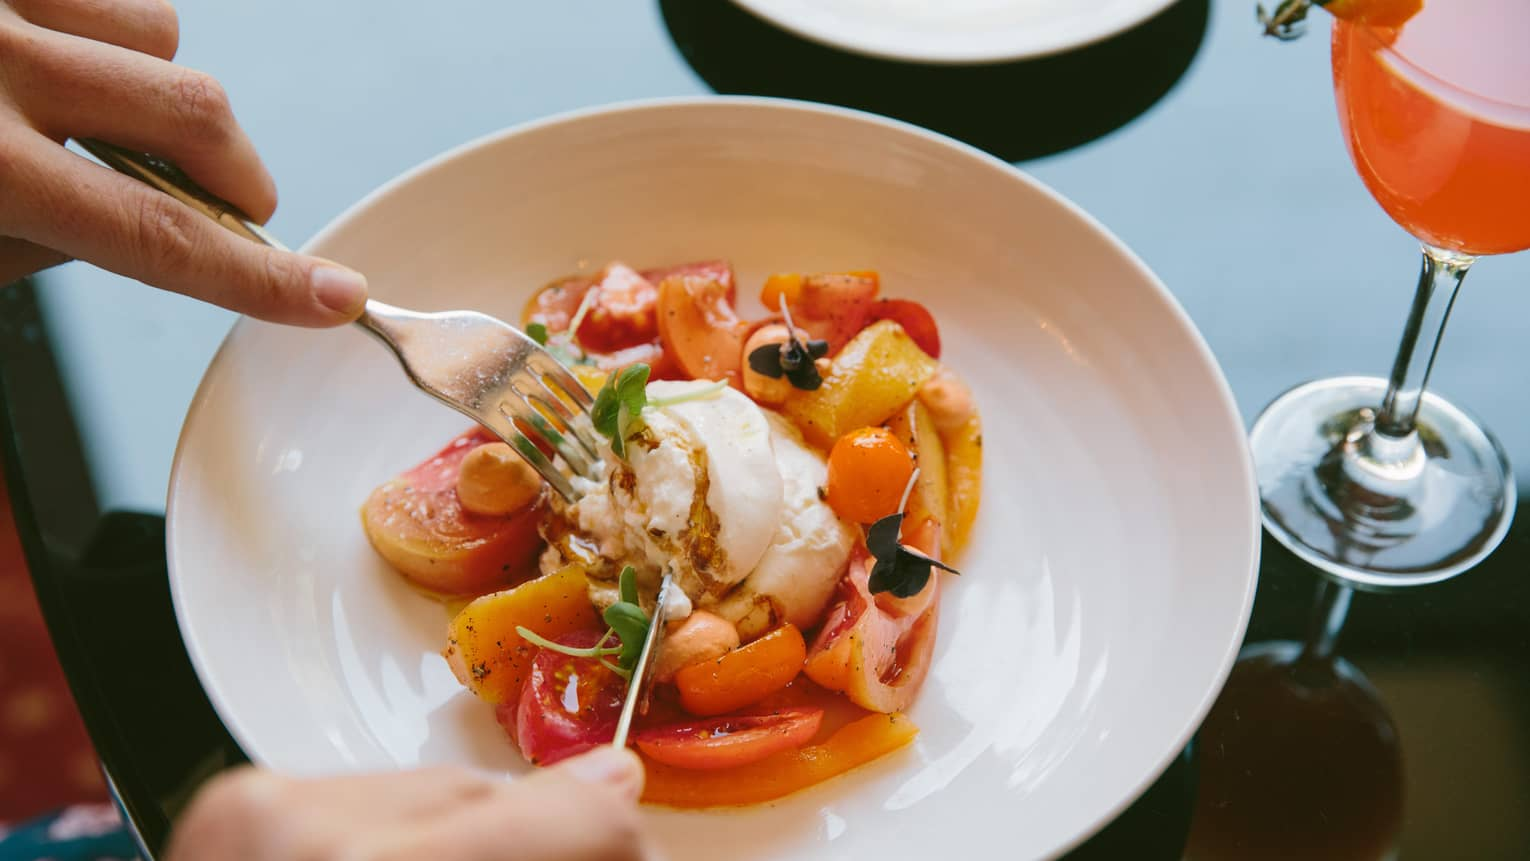 Burrata, surrounded by peaches and tomatoes